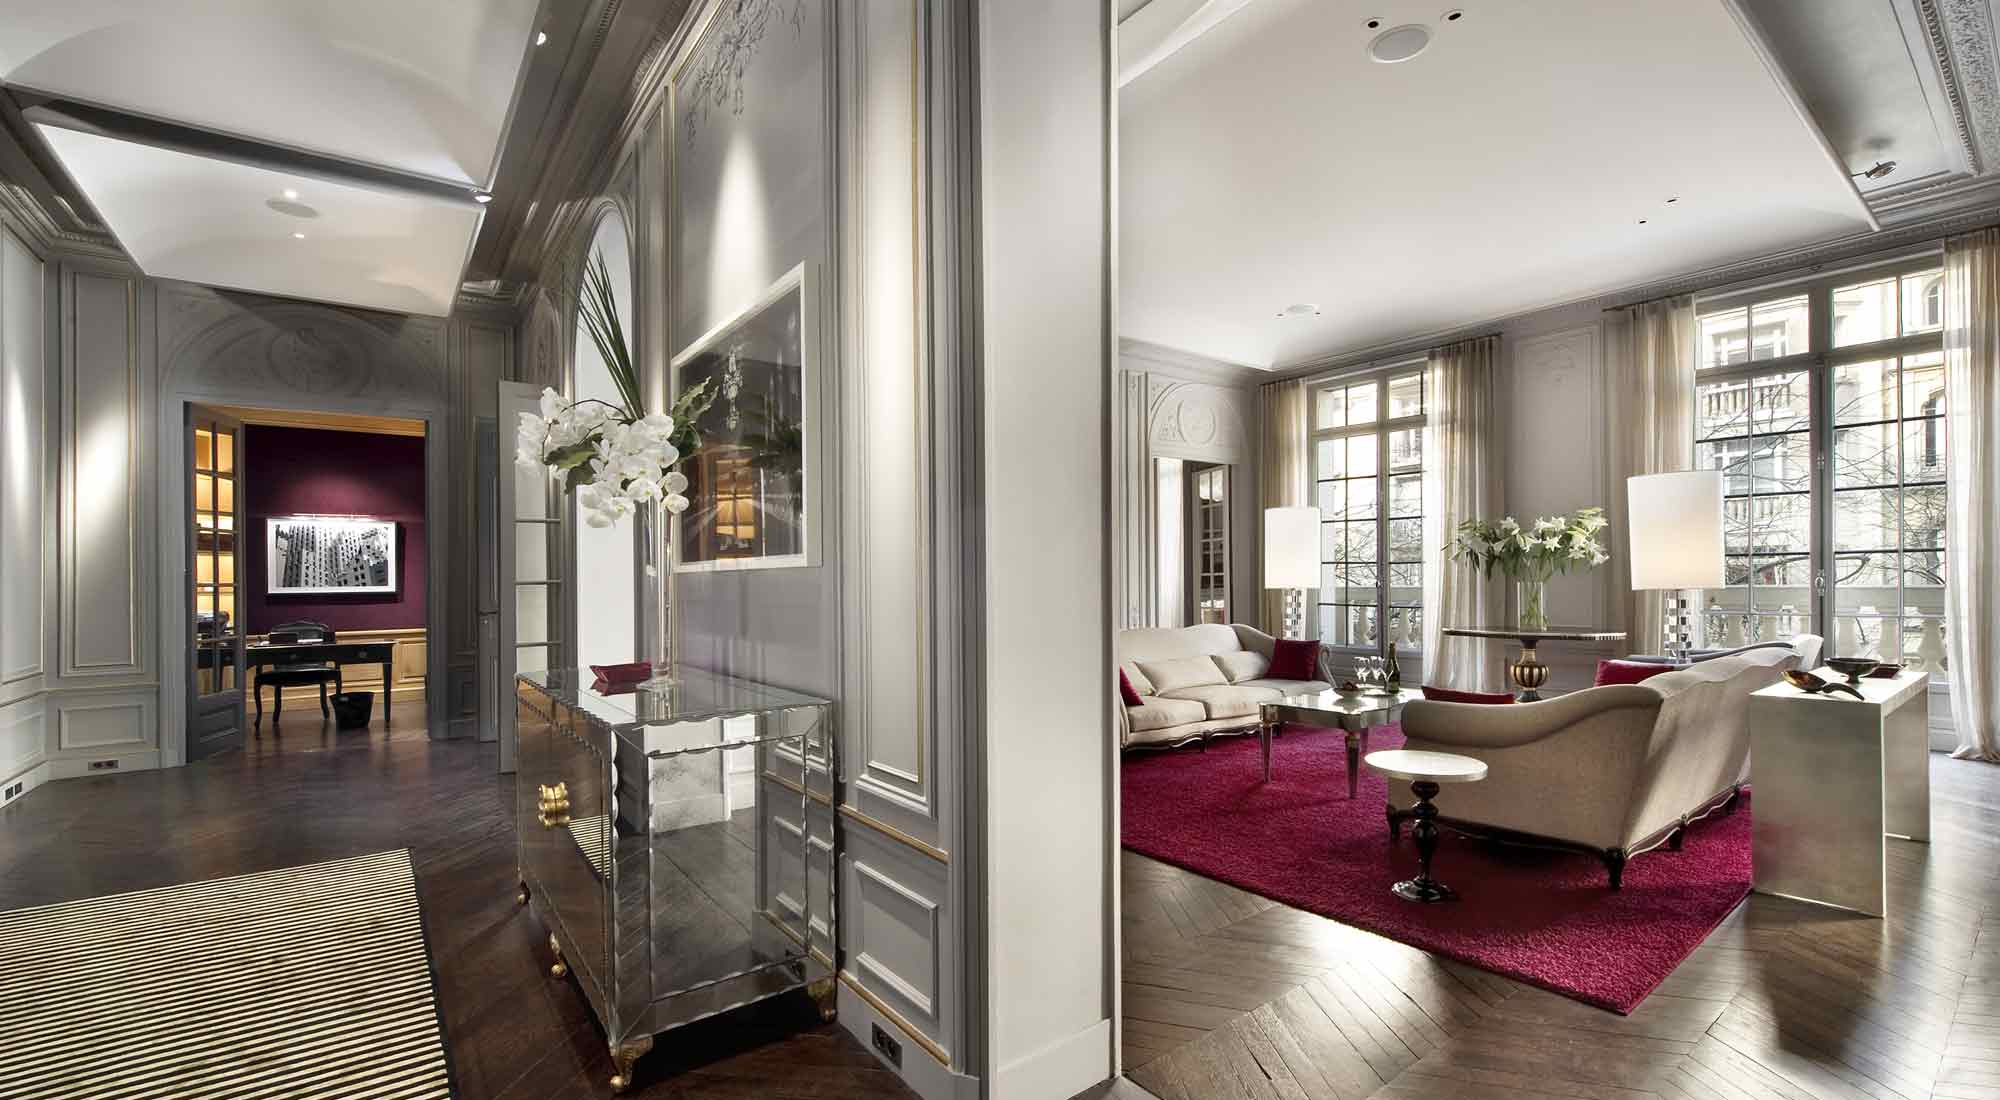 Best Home Office Design Paris Luxury Apartment For Rent 16th Casol Villas France